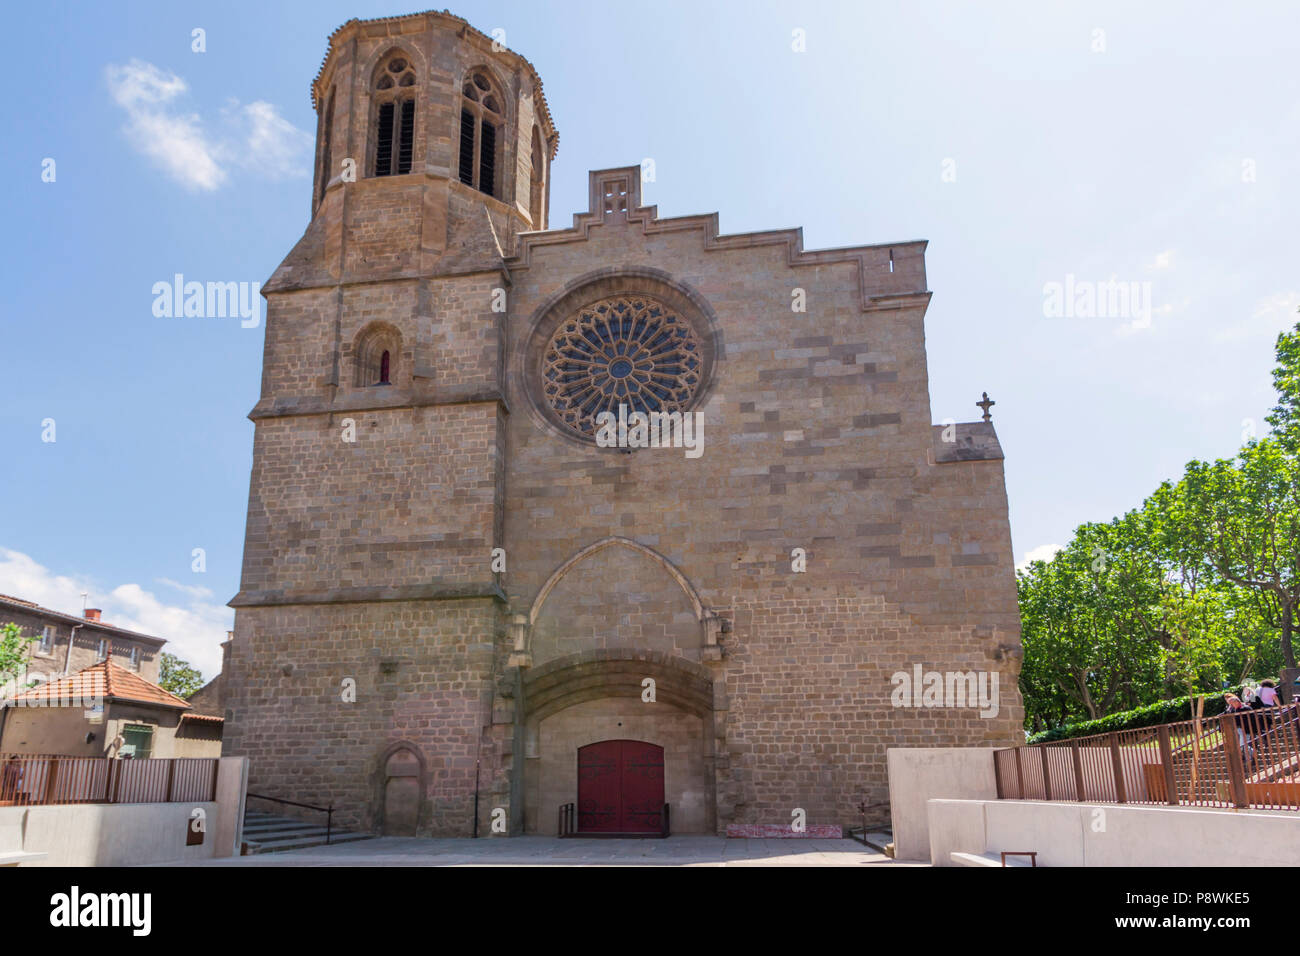 Cathedral of Saint Michael of Carcassonne, French department of Aude, Occitanie Region, France. - Stock Image